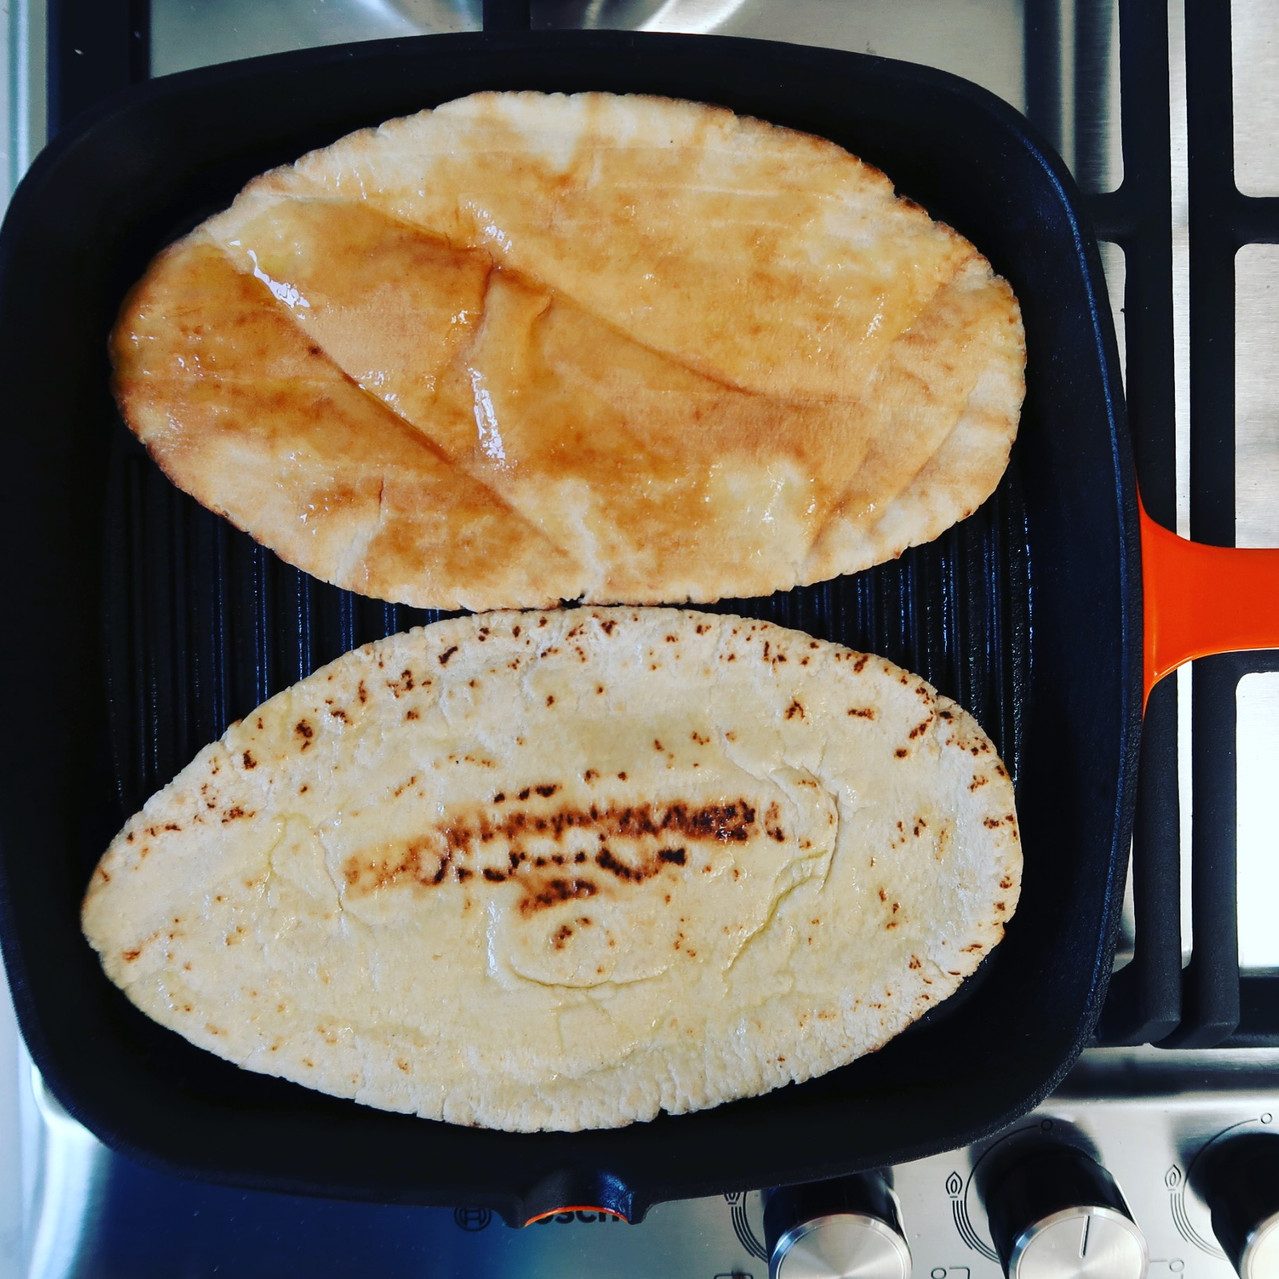 Pita bread warming on the griddle